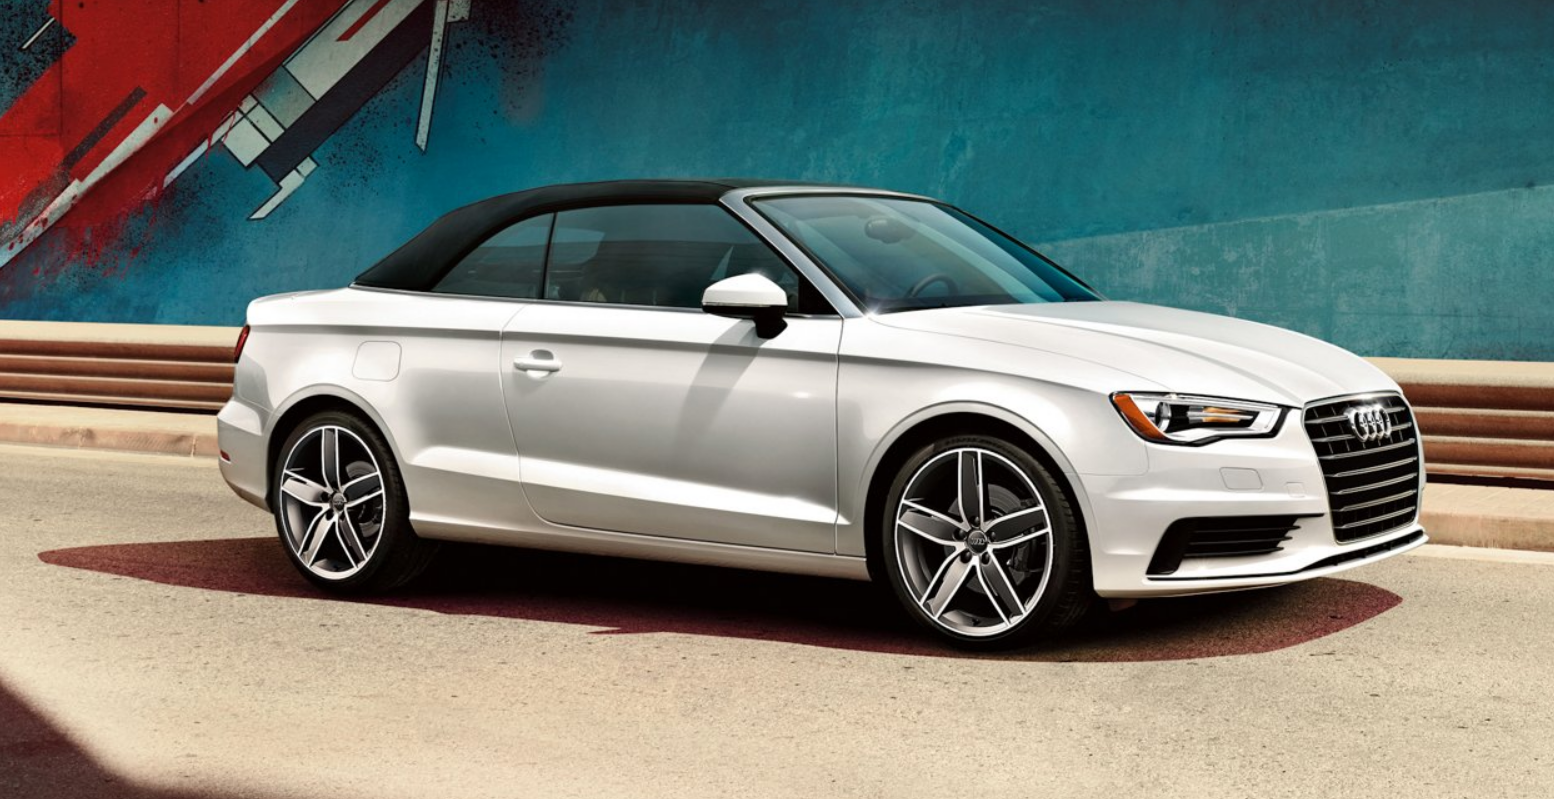 Audi A Convertible Luxury Sports Cars Get Great Prices On Audi A - Get in sports car